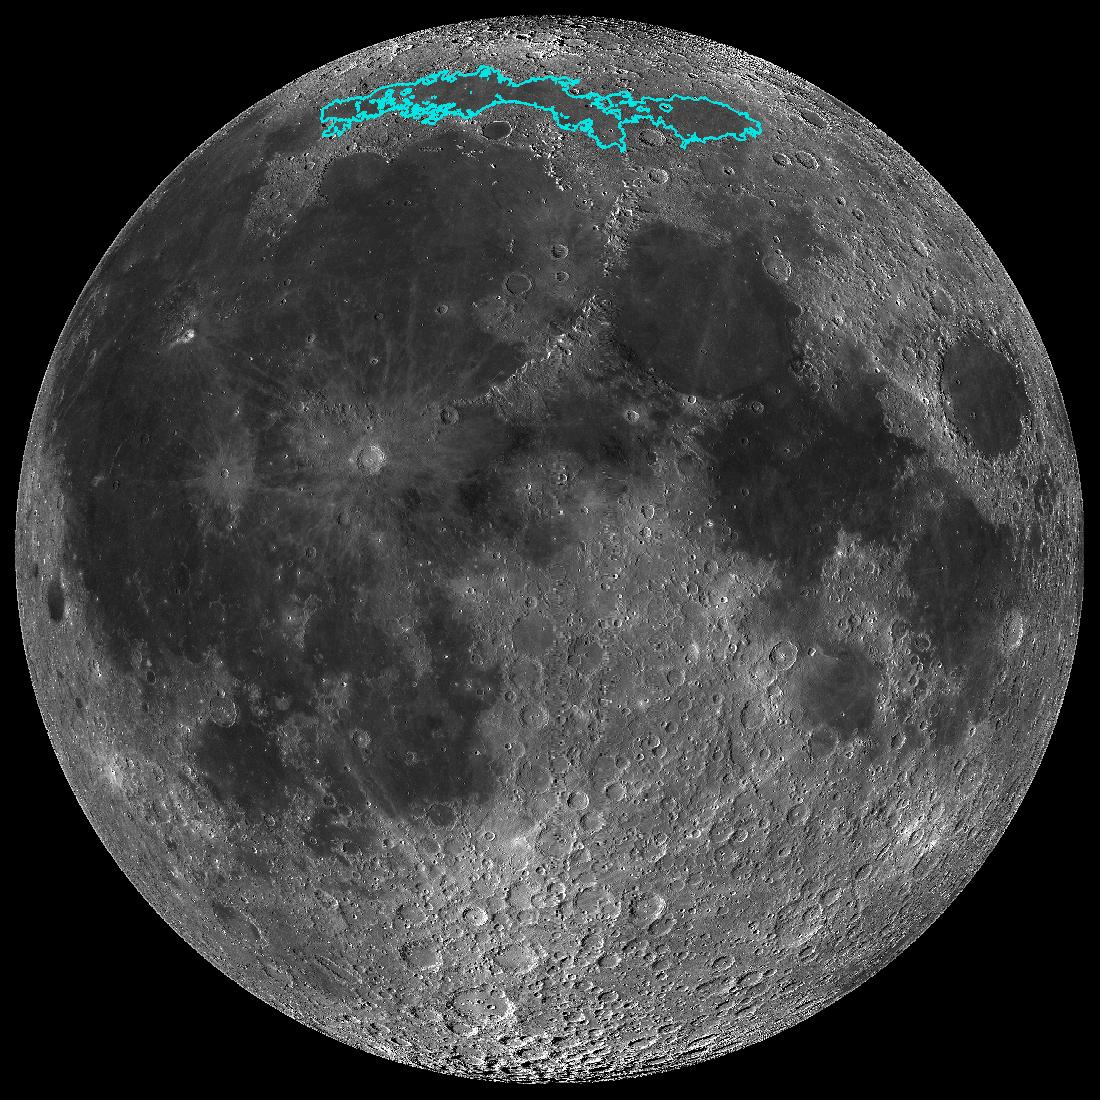 New surface features of the Moon have been discovered in a region called Mare Frigoris. This image is a mosaic composed of many images taken by NASAs Lunar Reconnaissance Orbiter (LRO).